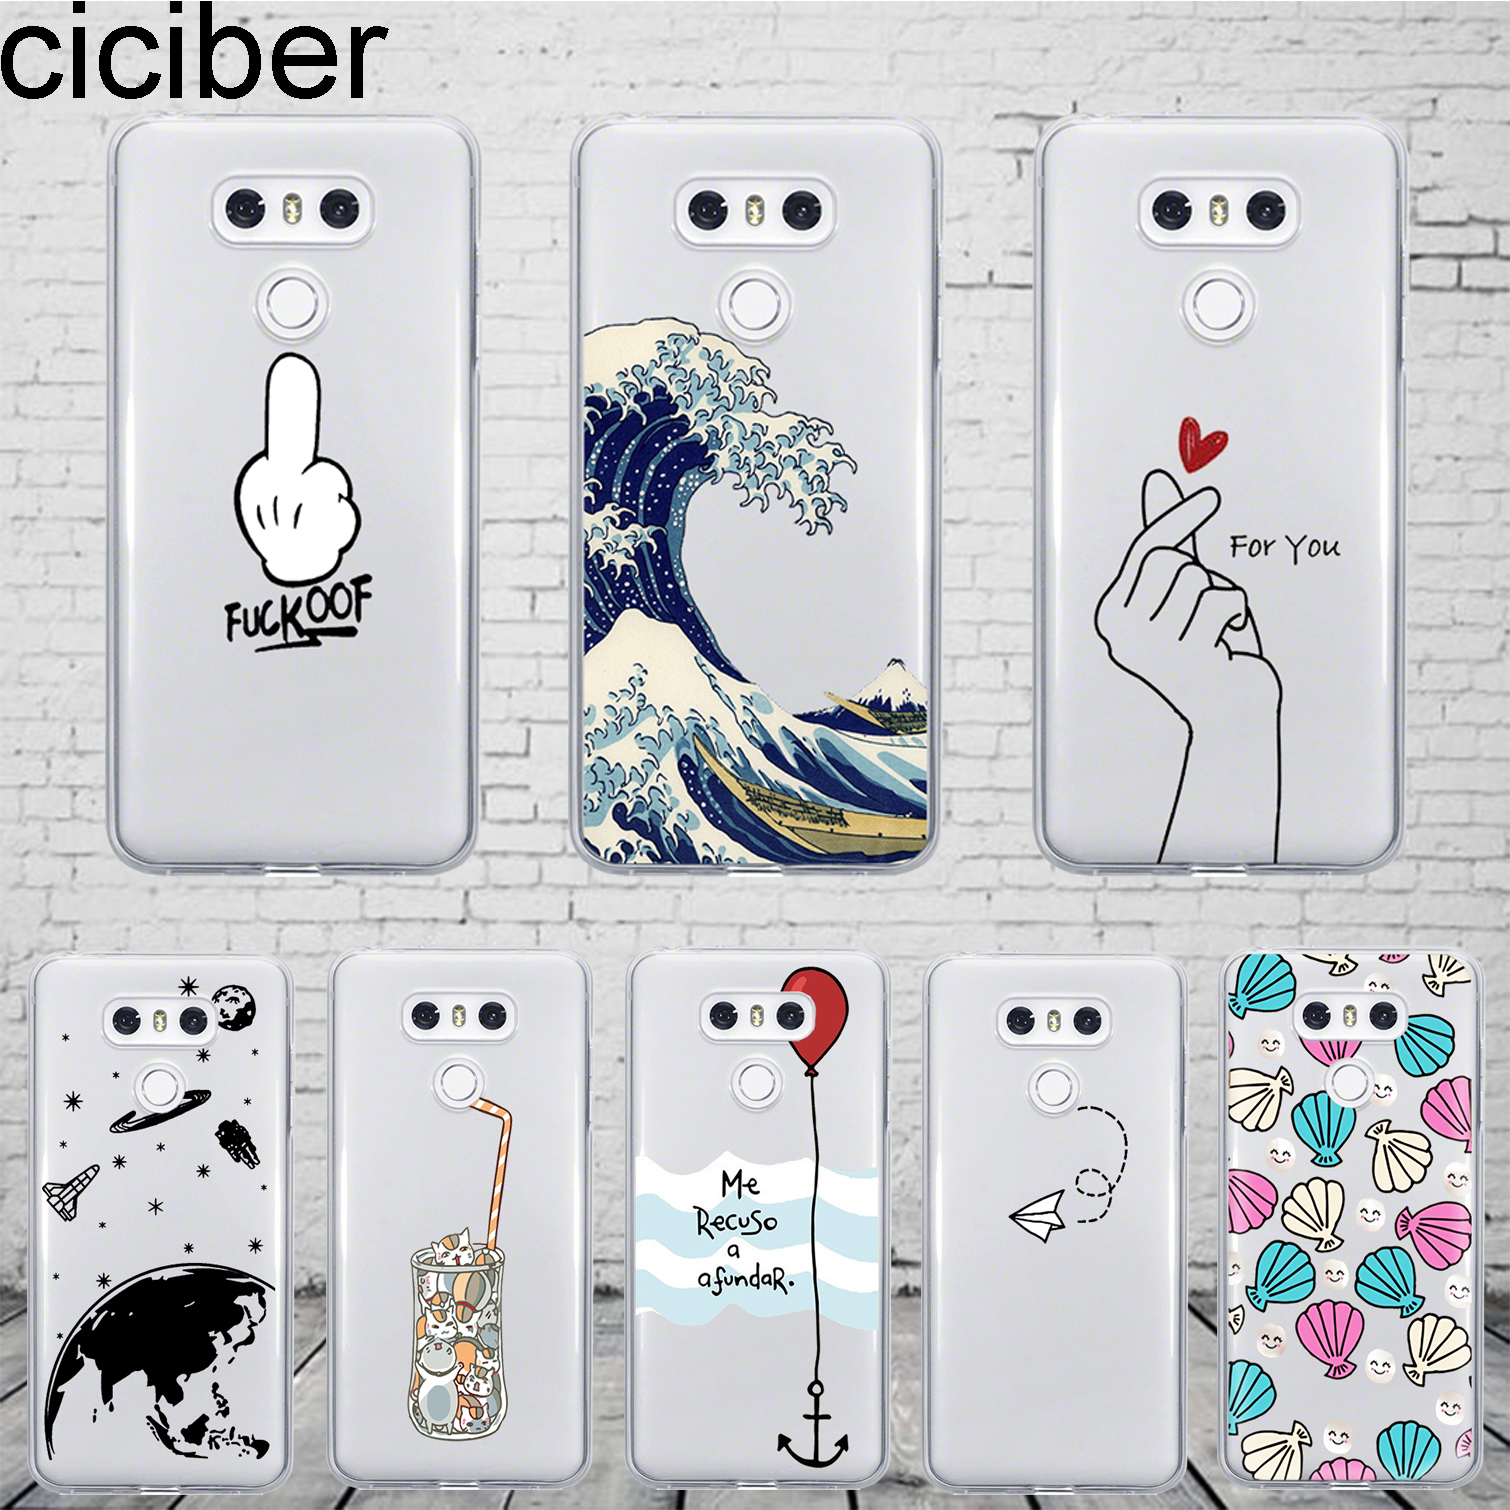 ciciber Balloon Finger Space For LG G7 G6 G5 G4 V40 V35 V30 V20 THINQ Phone Case K8 K10 K4 2017 2018 K9 K11 Plus Fundas